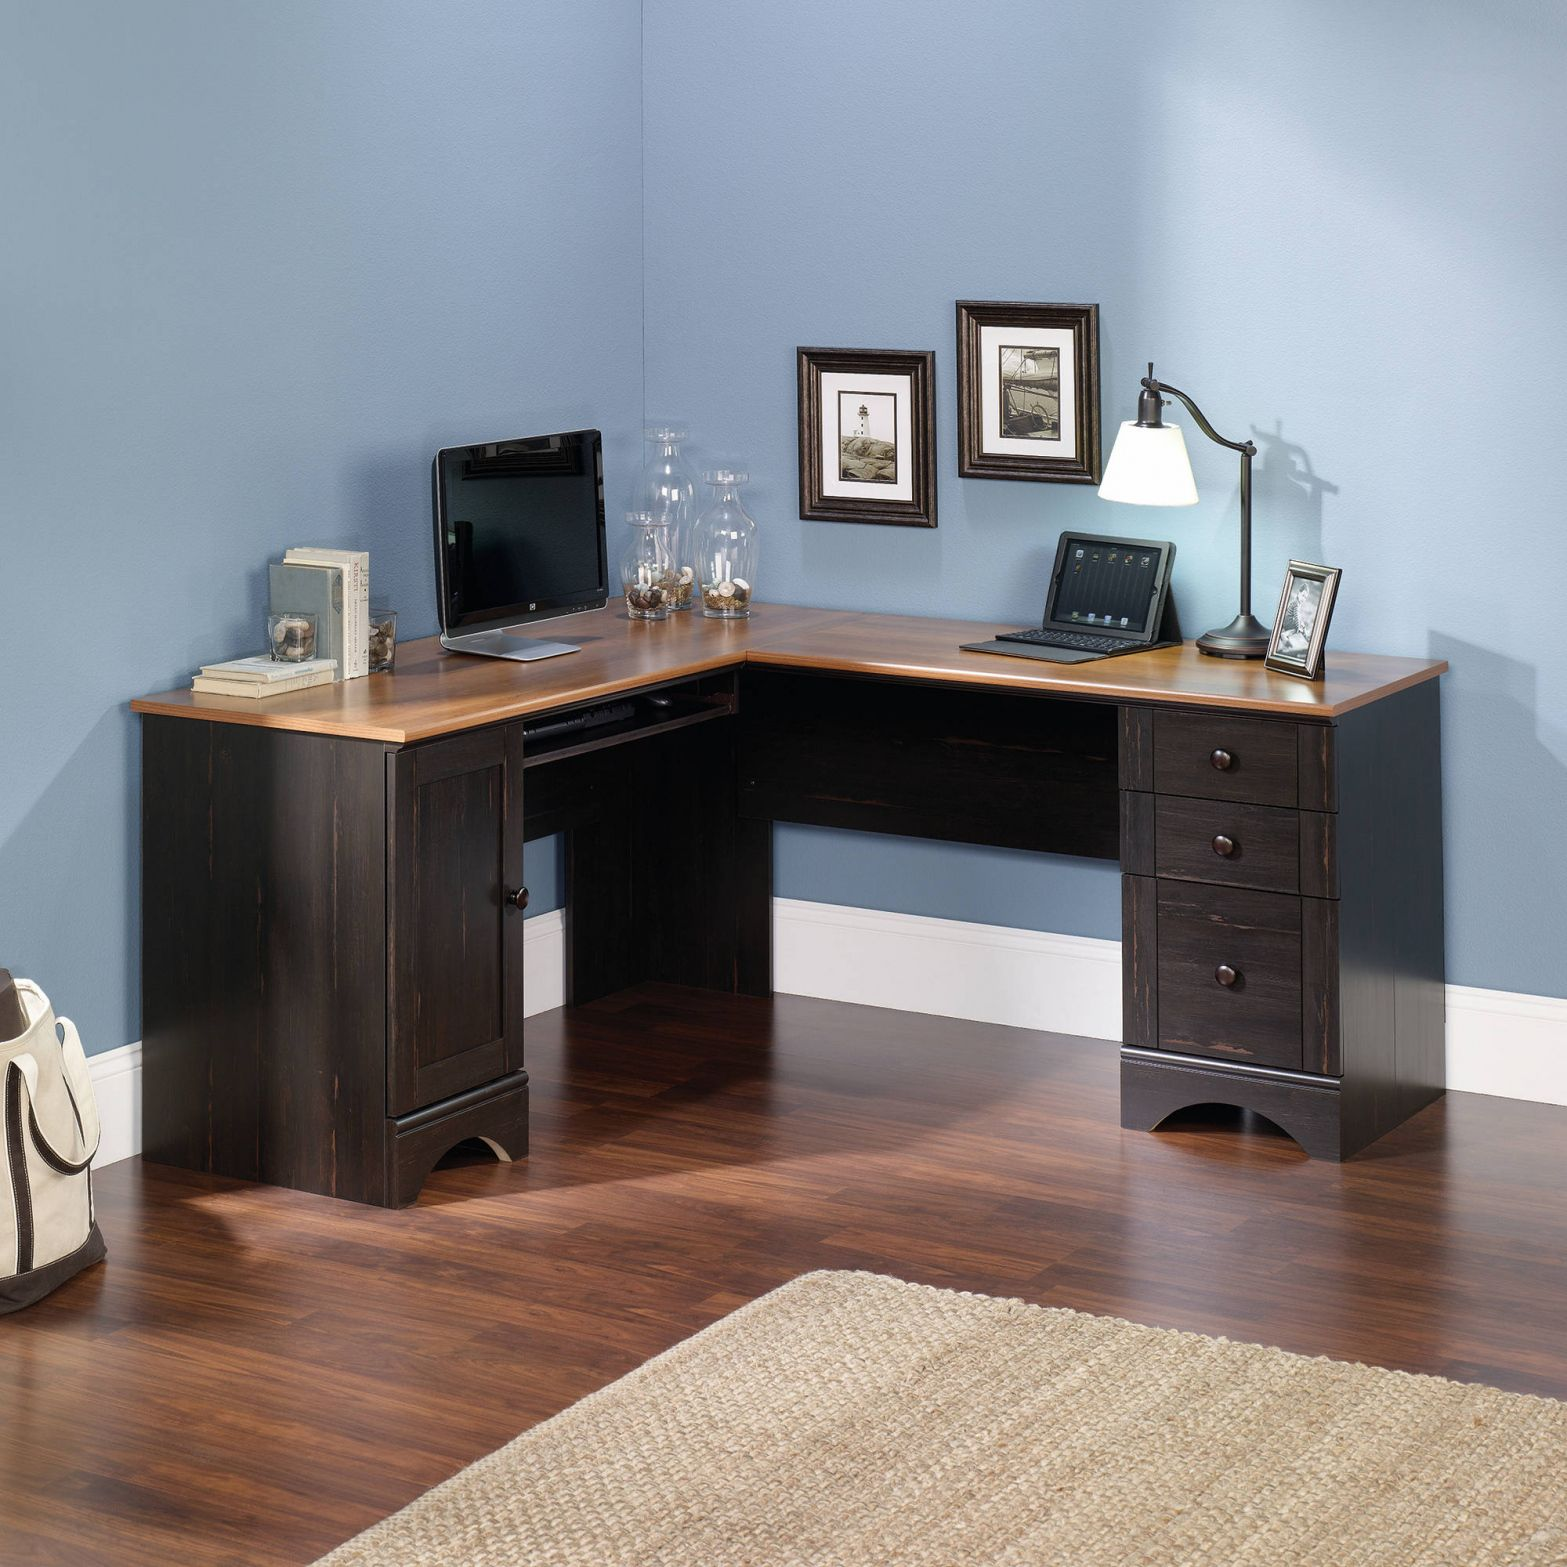 walmart office furniture. 70+ Walmart Office Table - Large Home Furniture Check More At Http:/ O